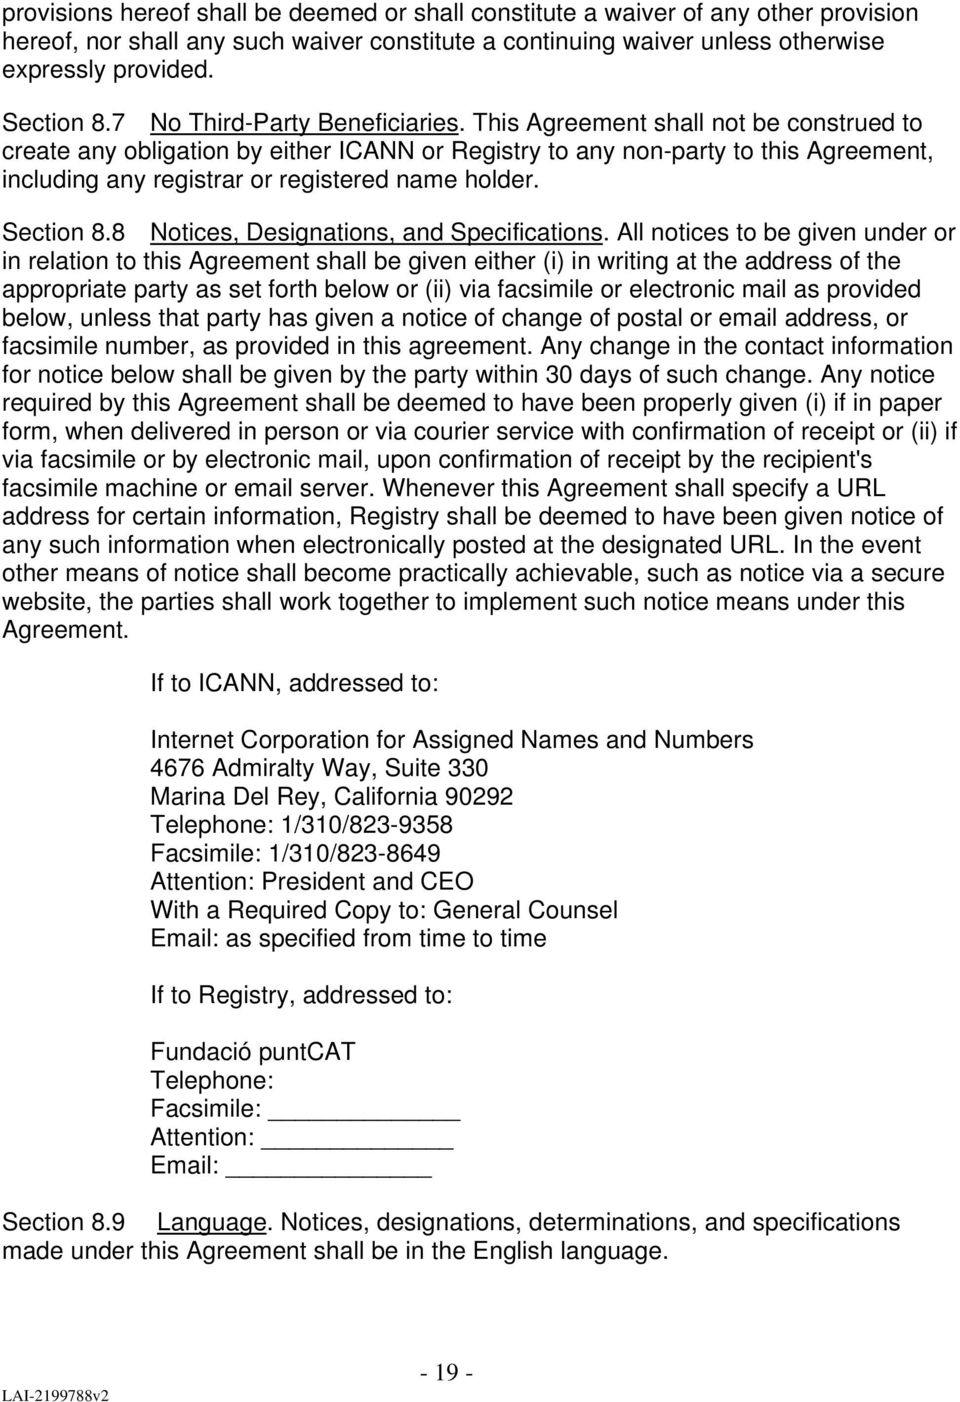 This Agreement shall not be construed to create any obligation by either ICANN or Registry to any non-party to this Agreement, including any registrar or registered name holder. Section 8.